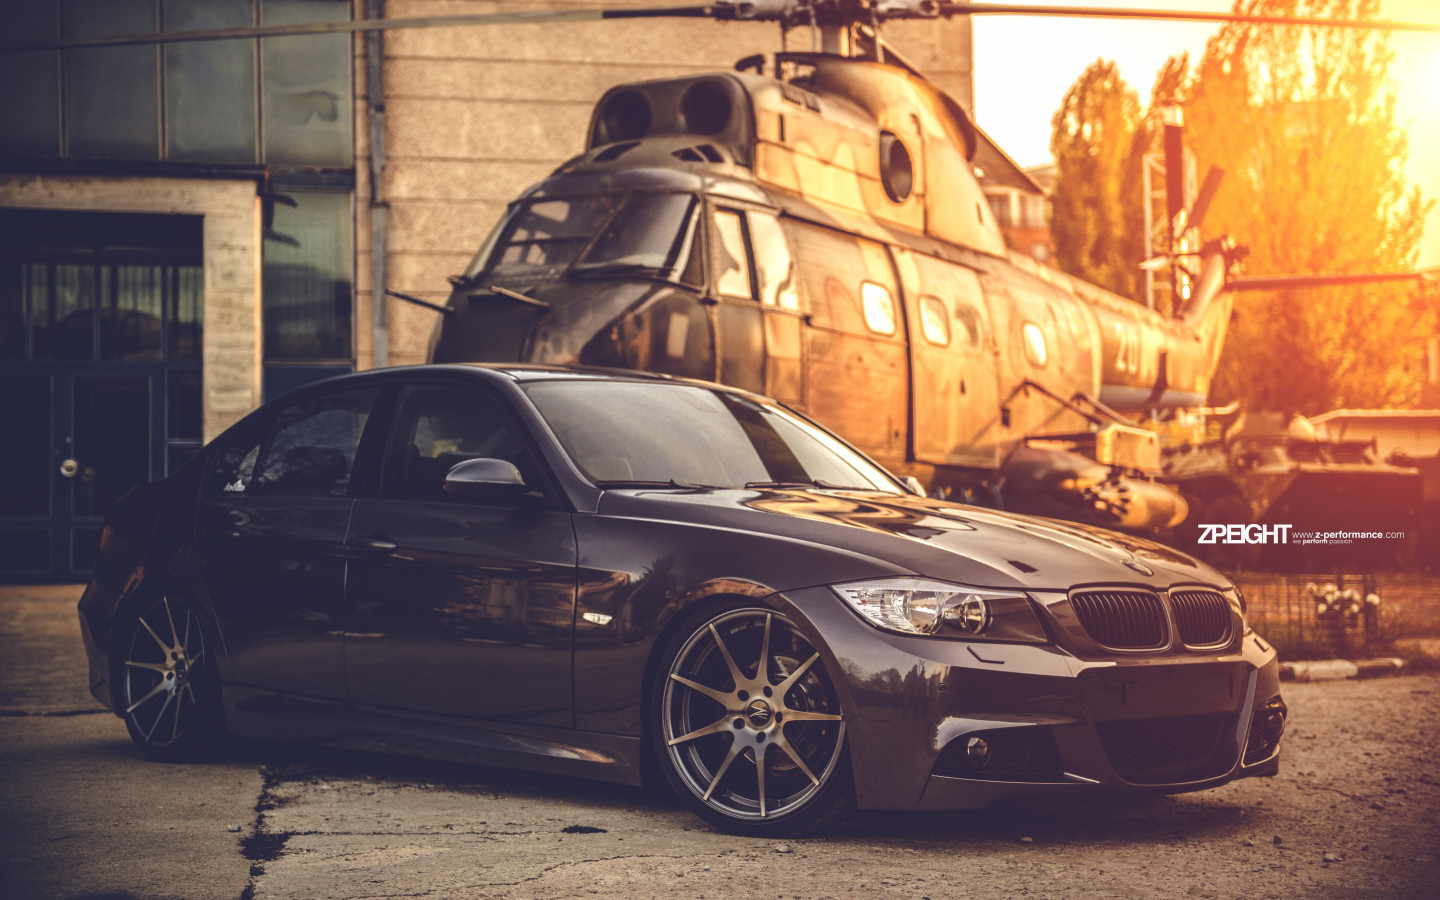 BMW E90 and one helicopter wallpaper 1440x900